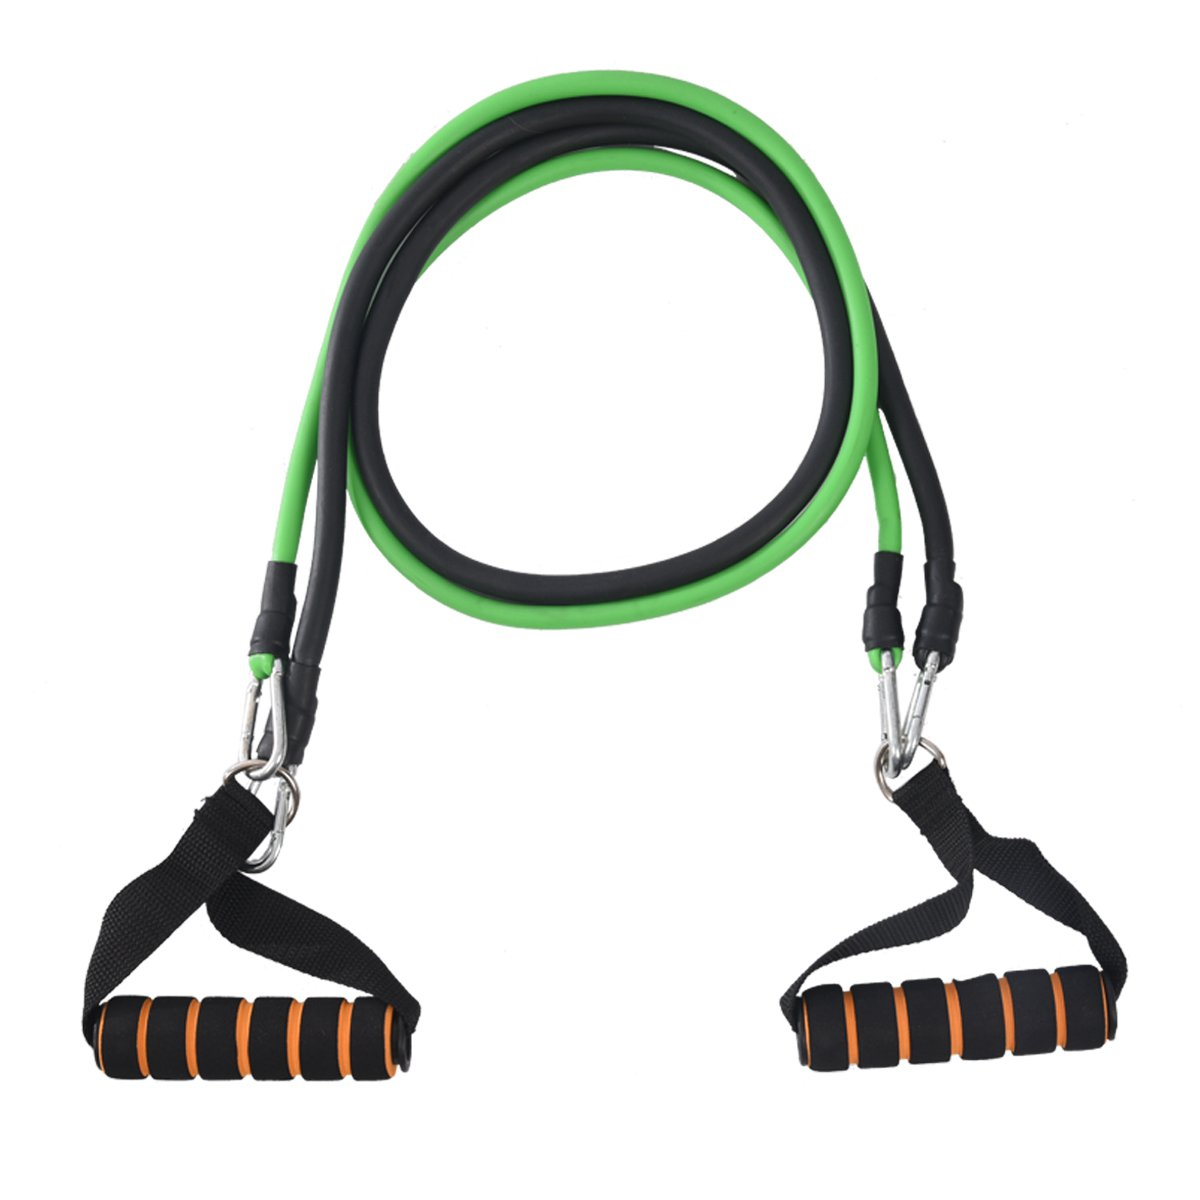 ELOS Premium Resistance Band Resistance Band Set With